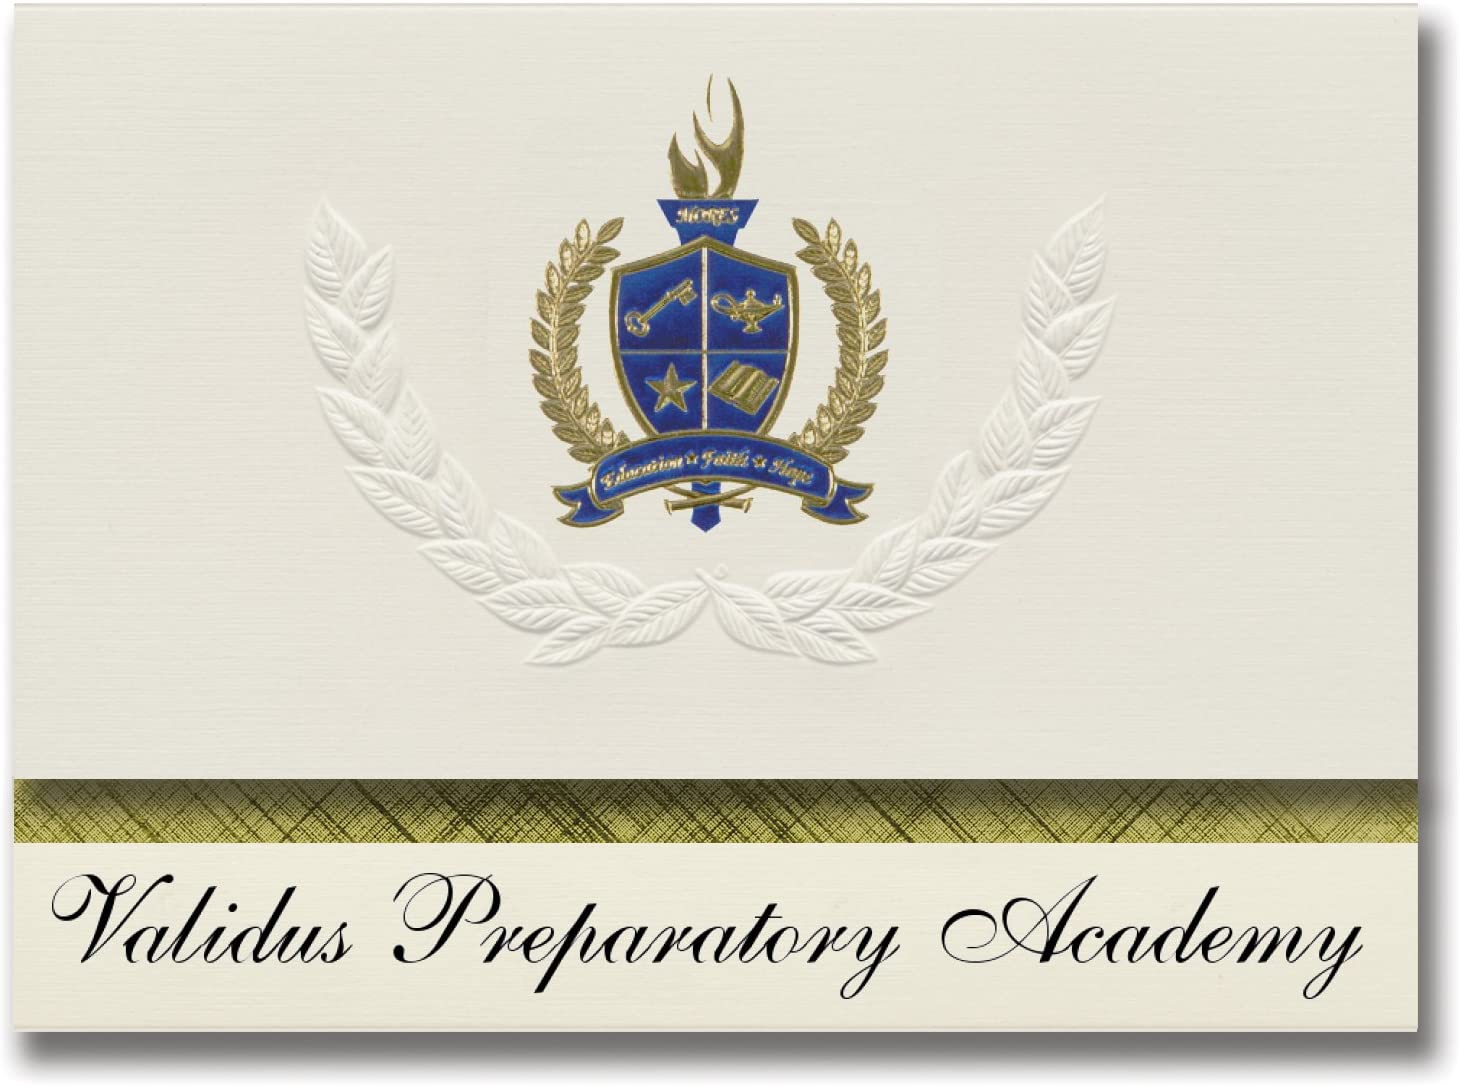 Signature Announcements Validus Preparatory Academy (Bronx, NY) Graduation Announcements, Presidential style, Basic package of 25 with Gold & Blue Metallic Foil seal